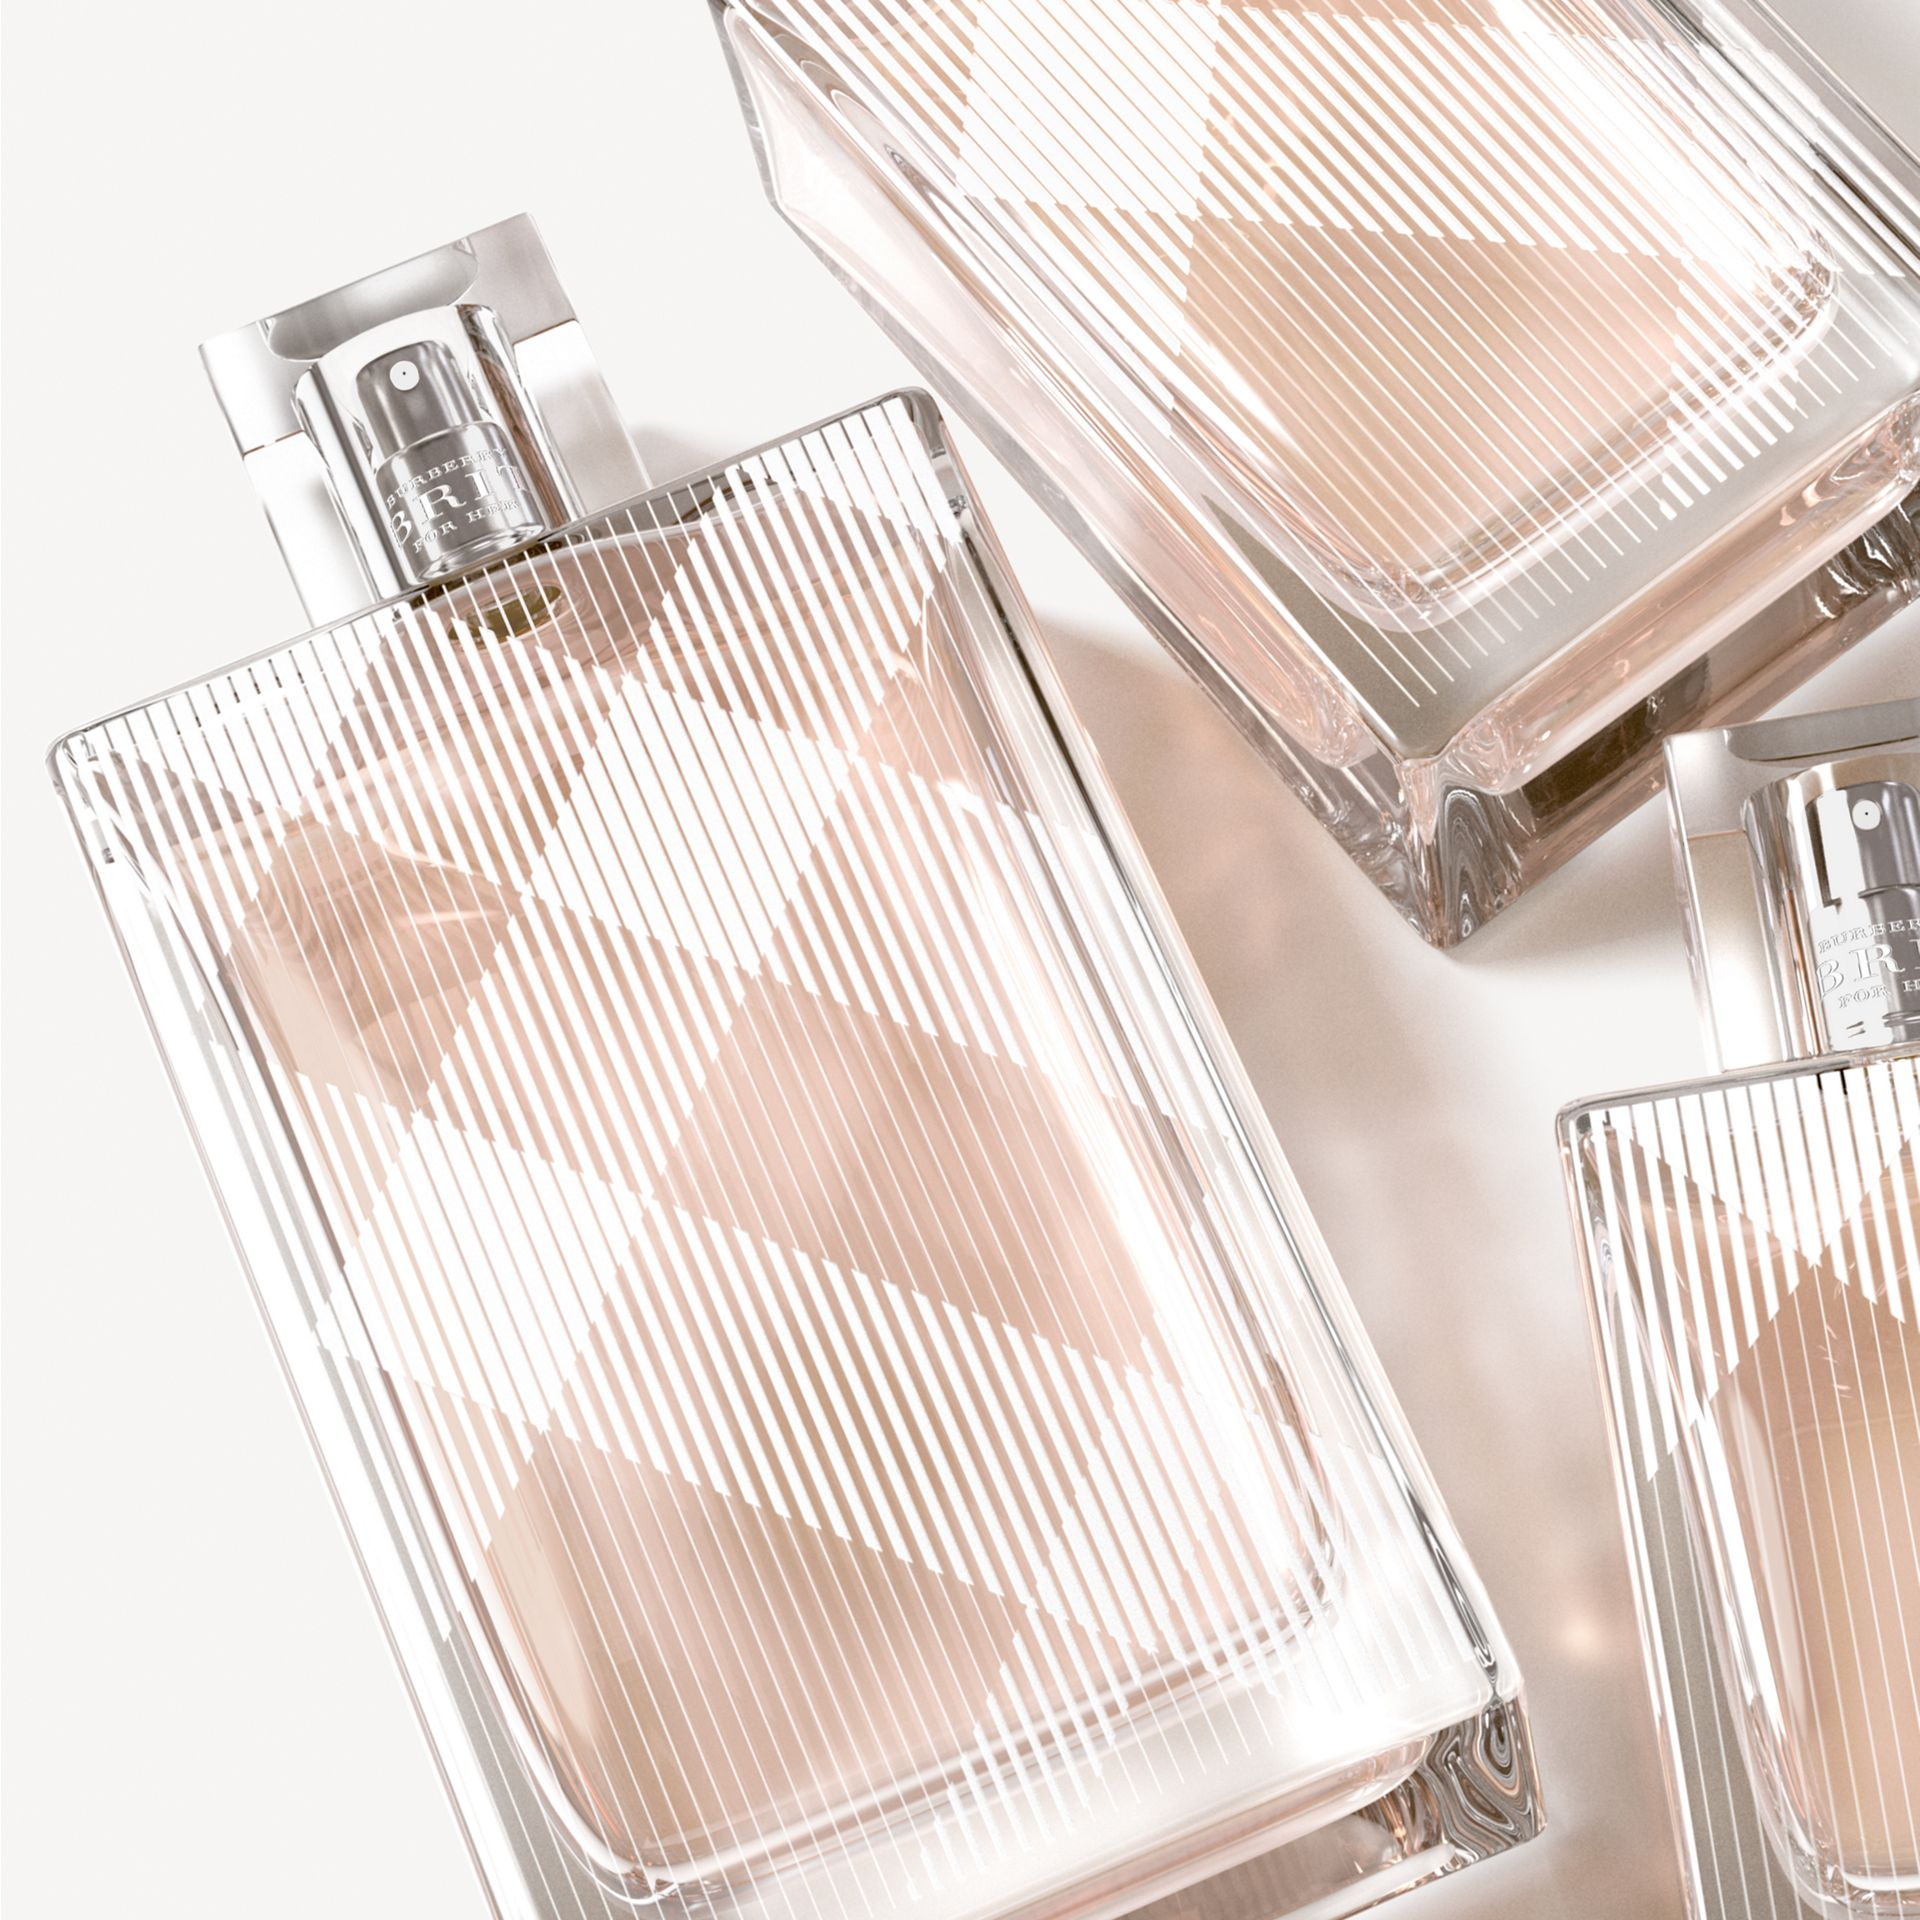 Burberry Brit For Her Eau De Toilette 100 ml - Galerie-Bild 2